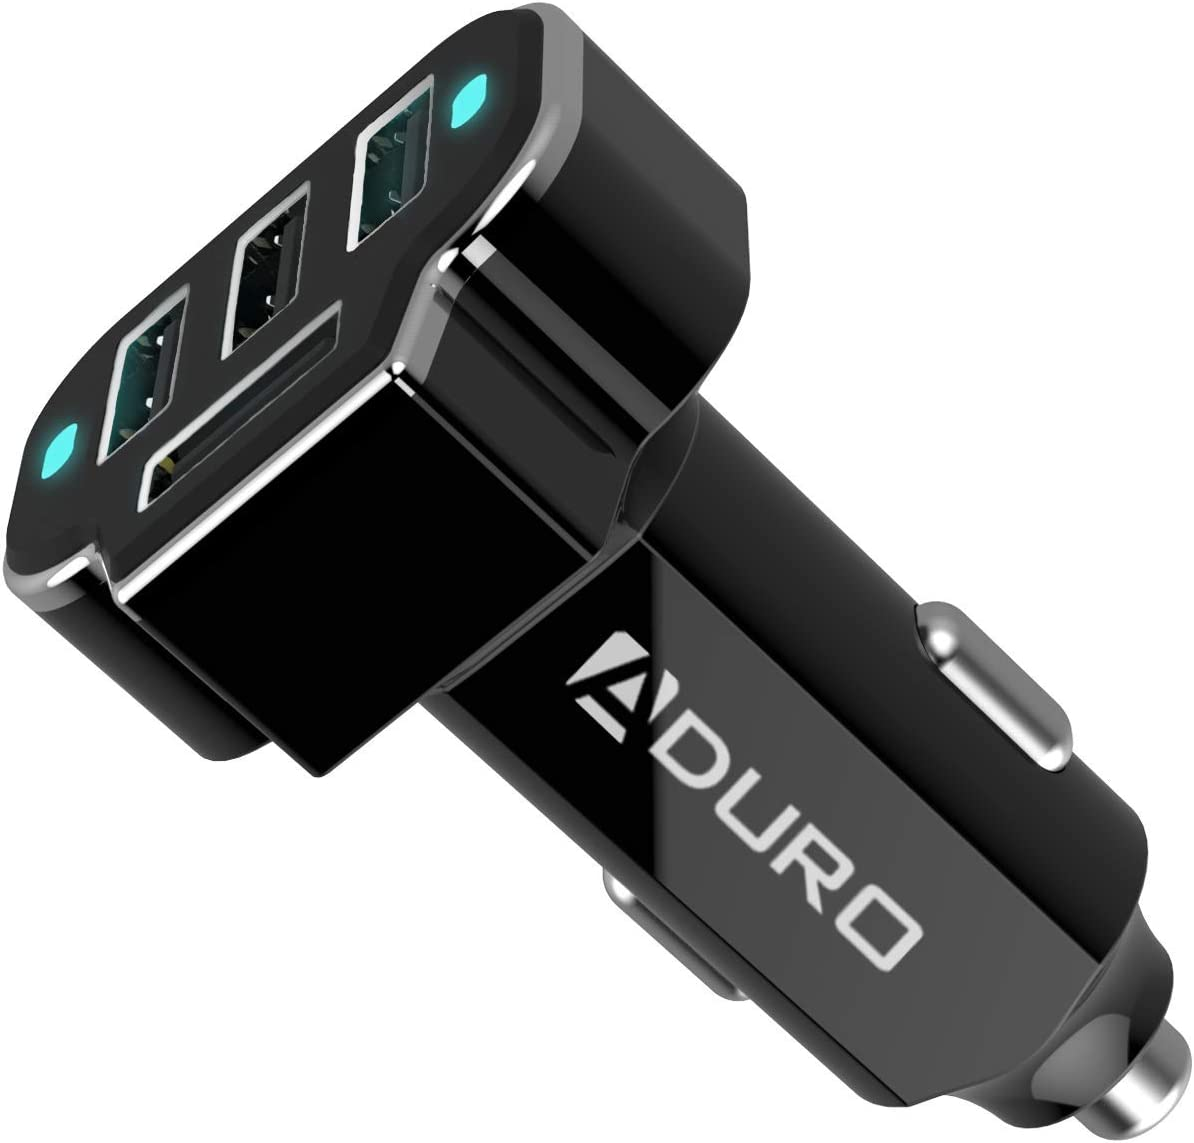 Aduro 4 Port Car Charger USB Adapter, 12V Fast Car Charger USB Adapter Power Station 5.2A/26W Output (Black)